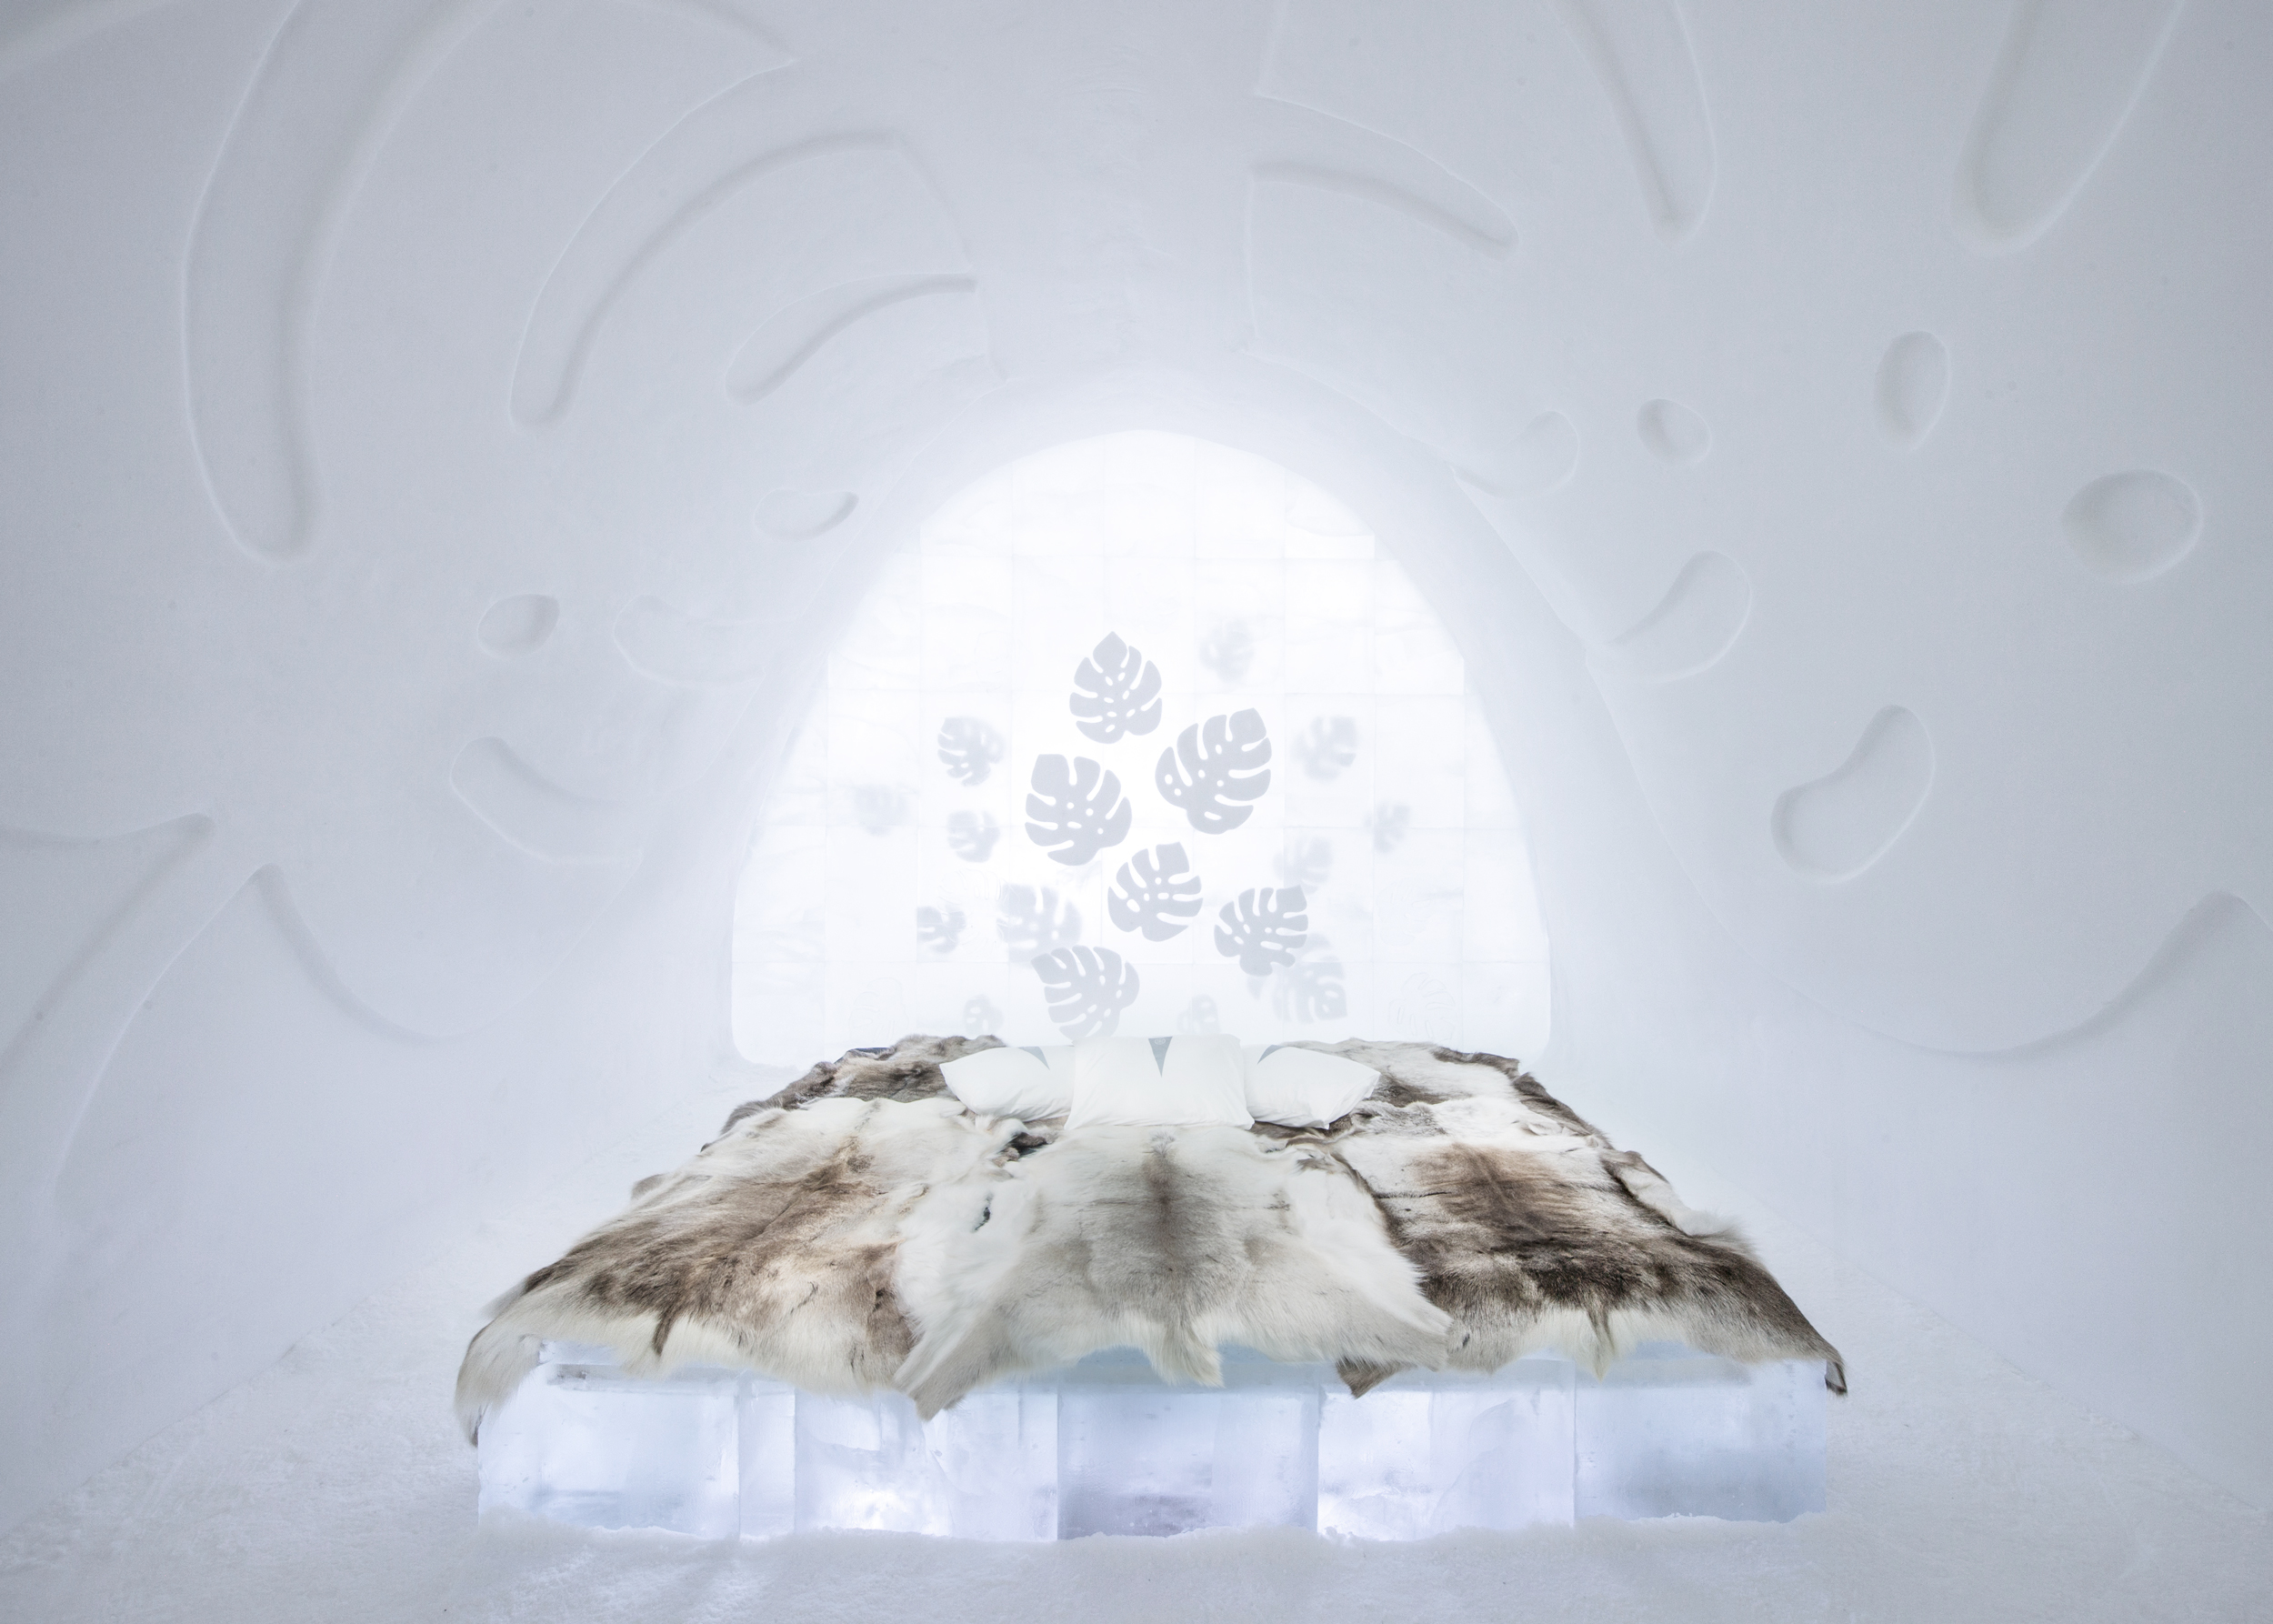 Icehotel_Monstera_Kauppi-&-Kauppi_Photo-Asaf-Kliger_6.jpg